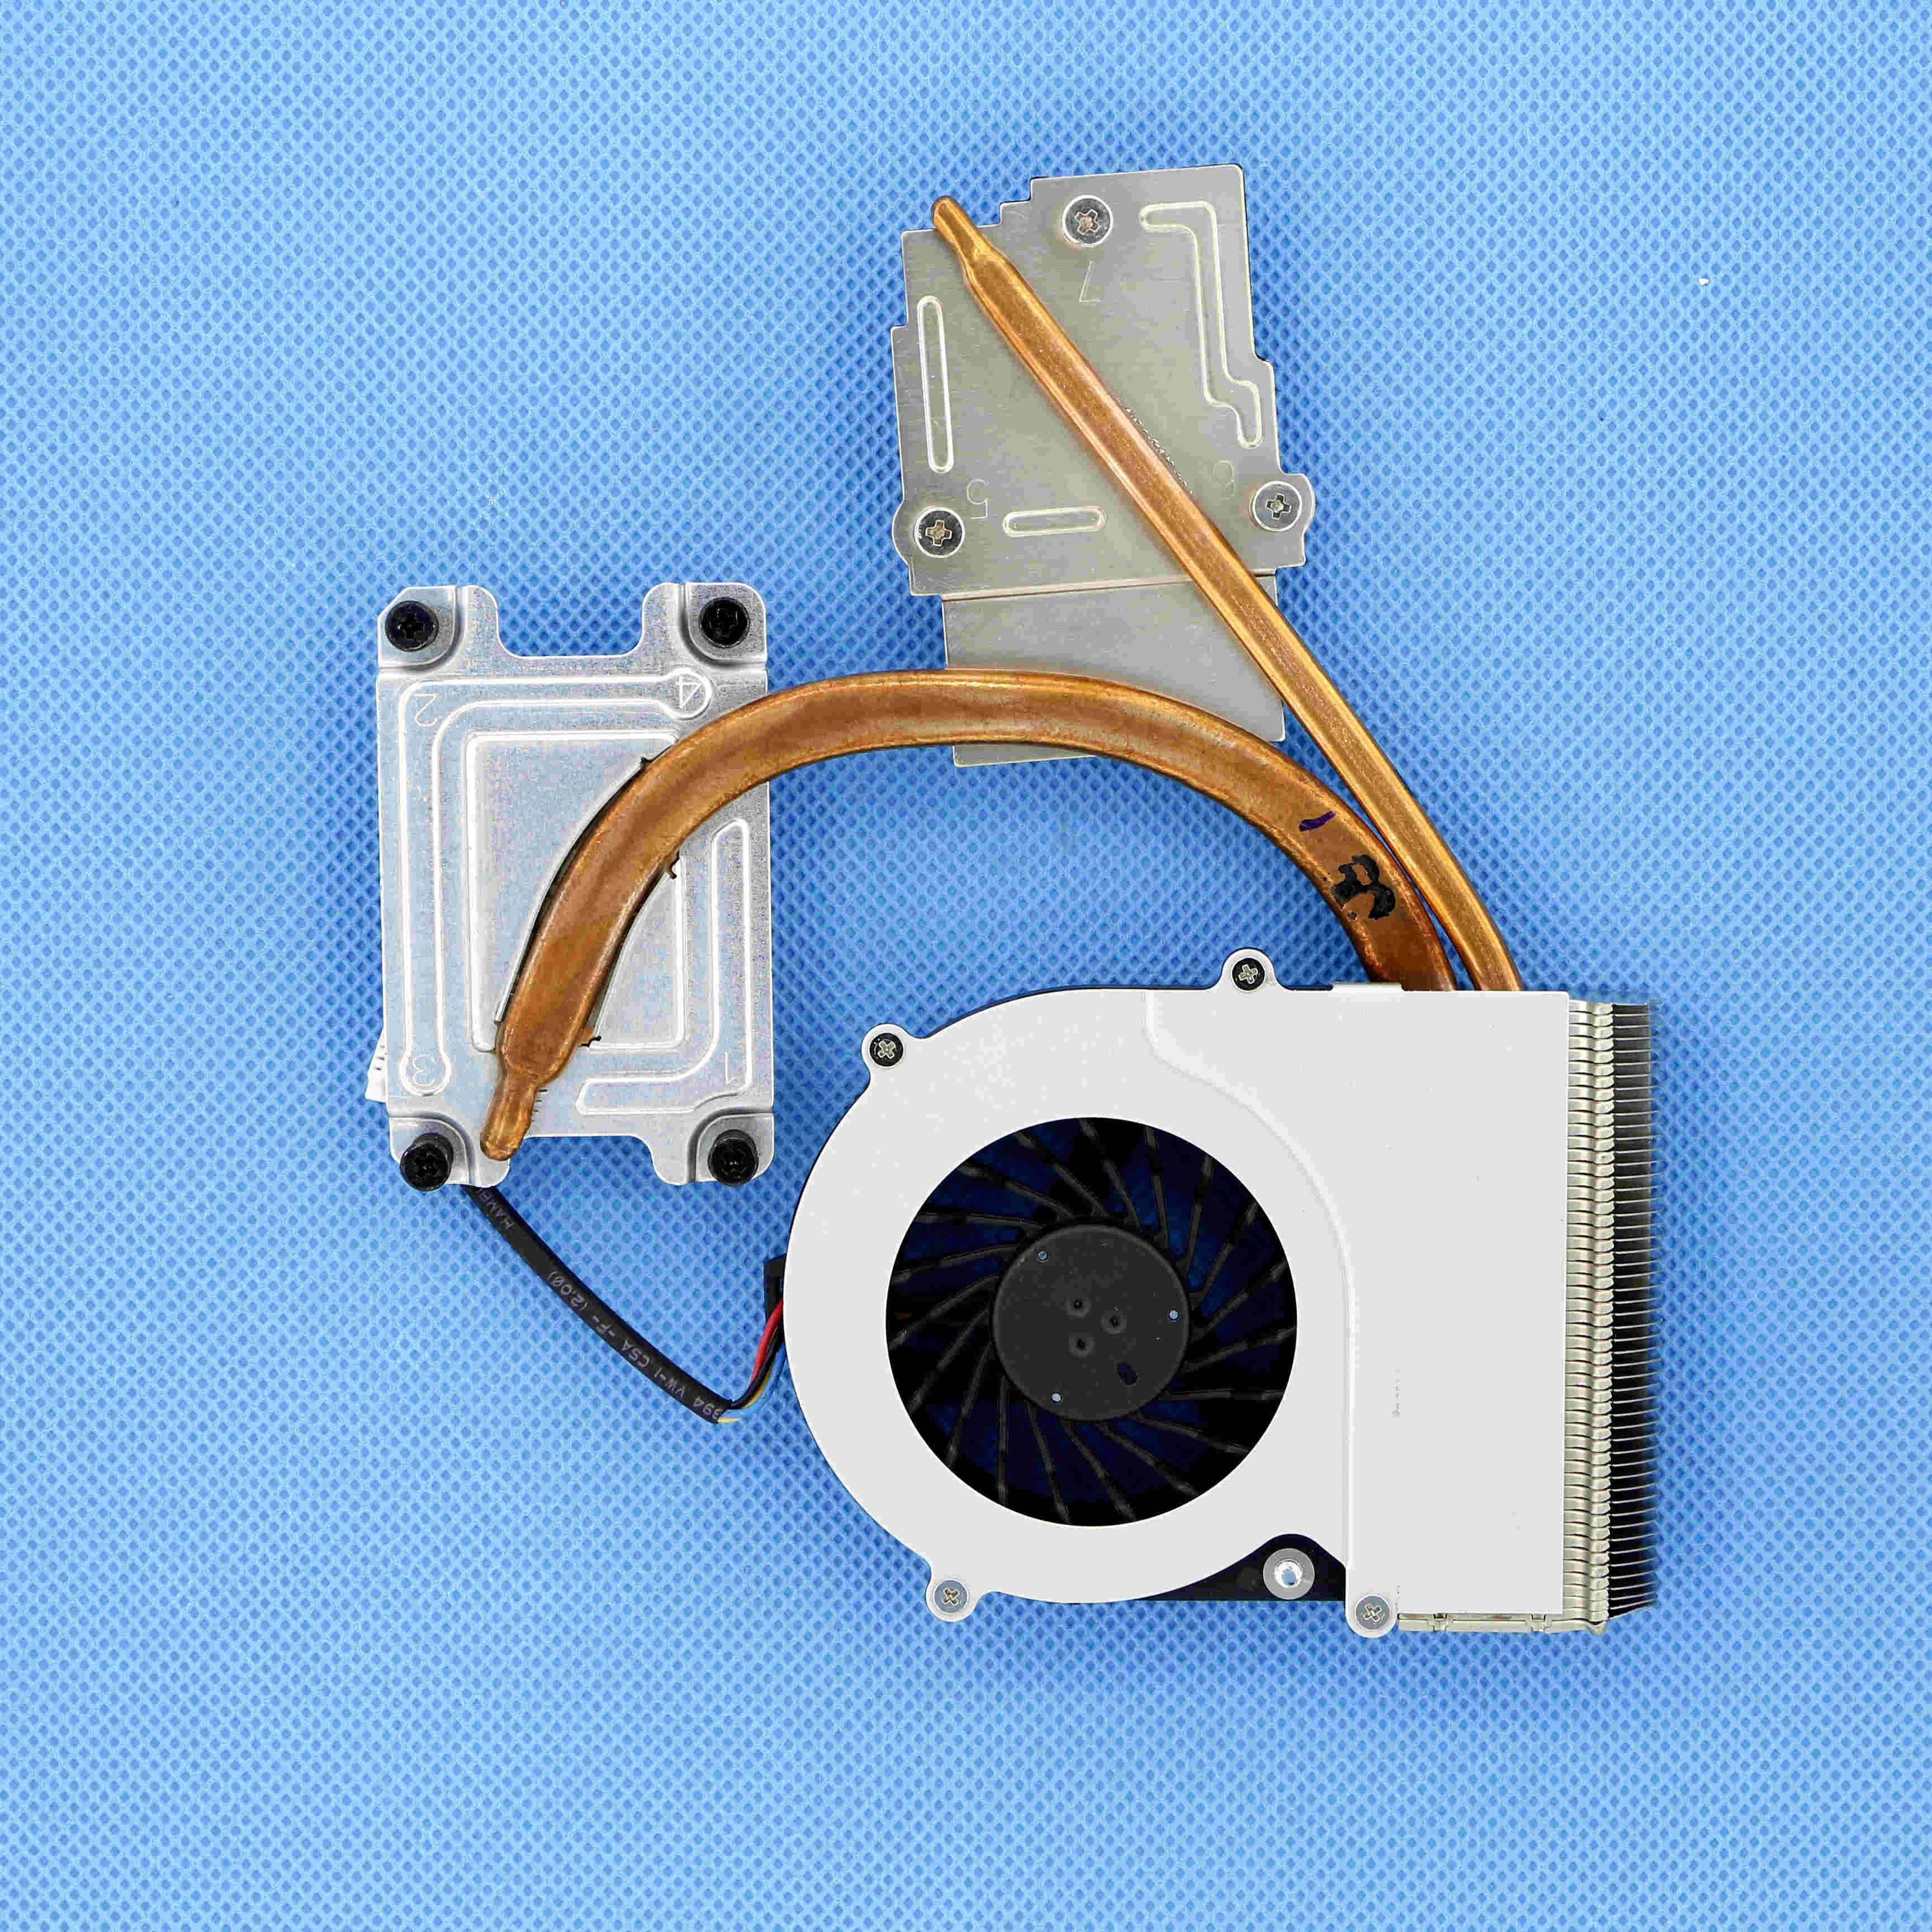 V000230650 Genuine New Heat-sink Thermal Module W/ CPU Cooling Fan For Toshiba Satellite Pro C640 Laptop